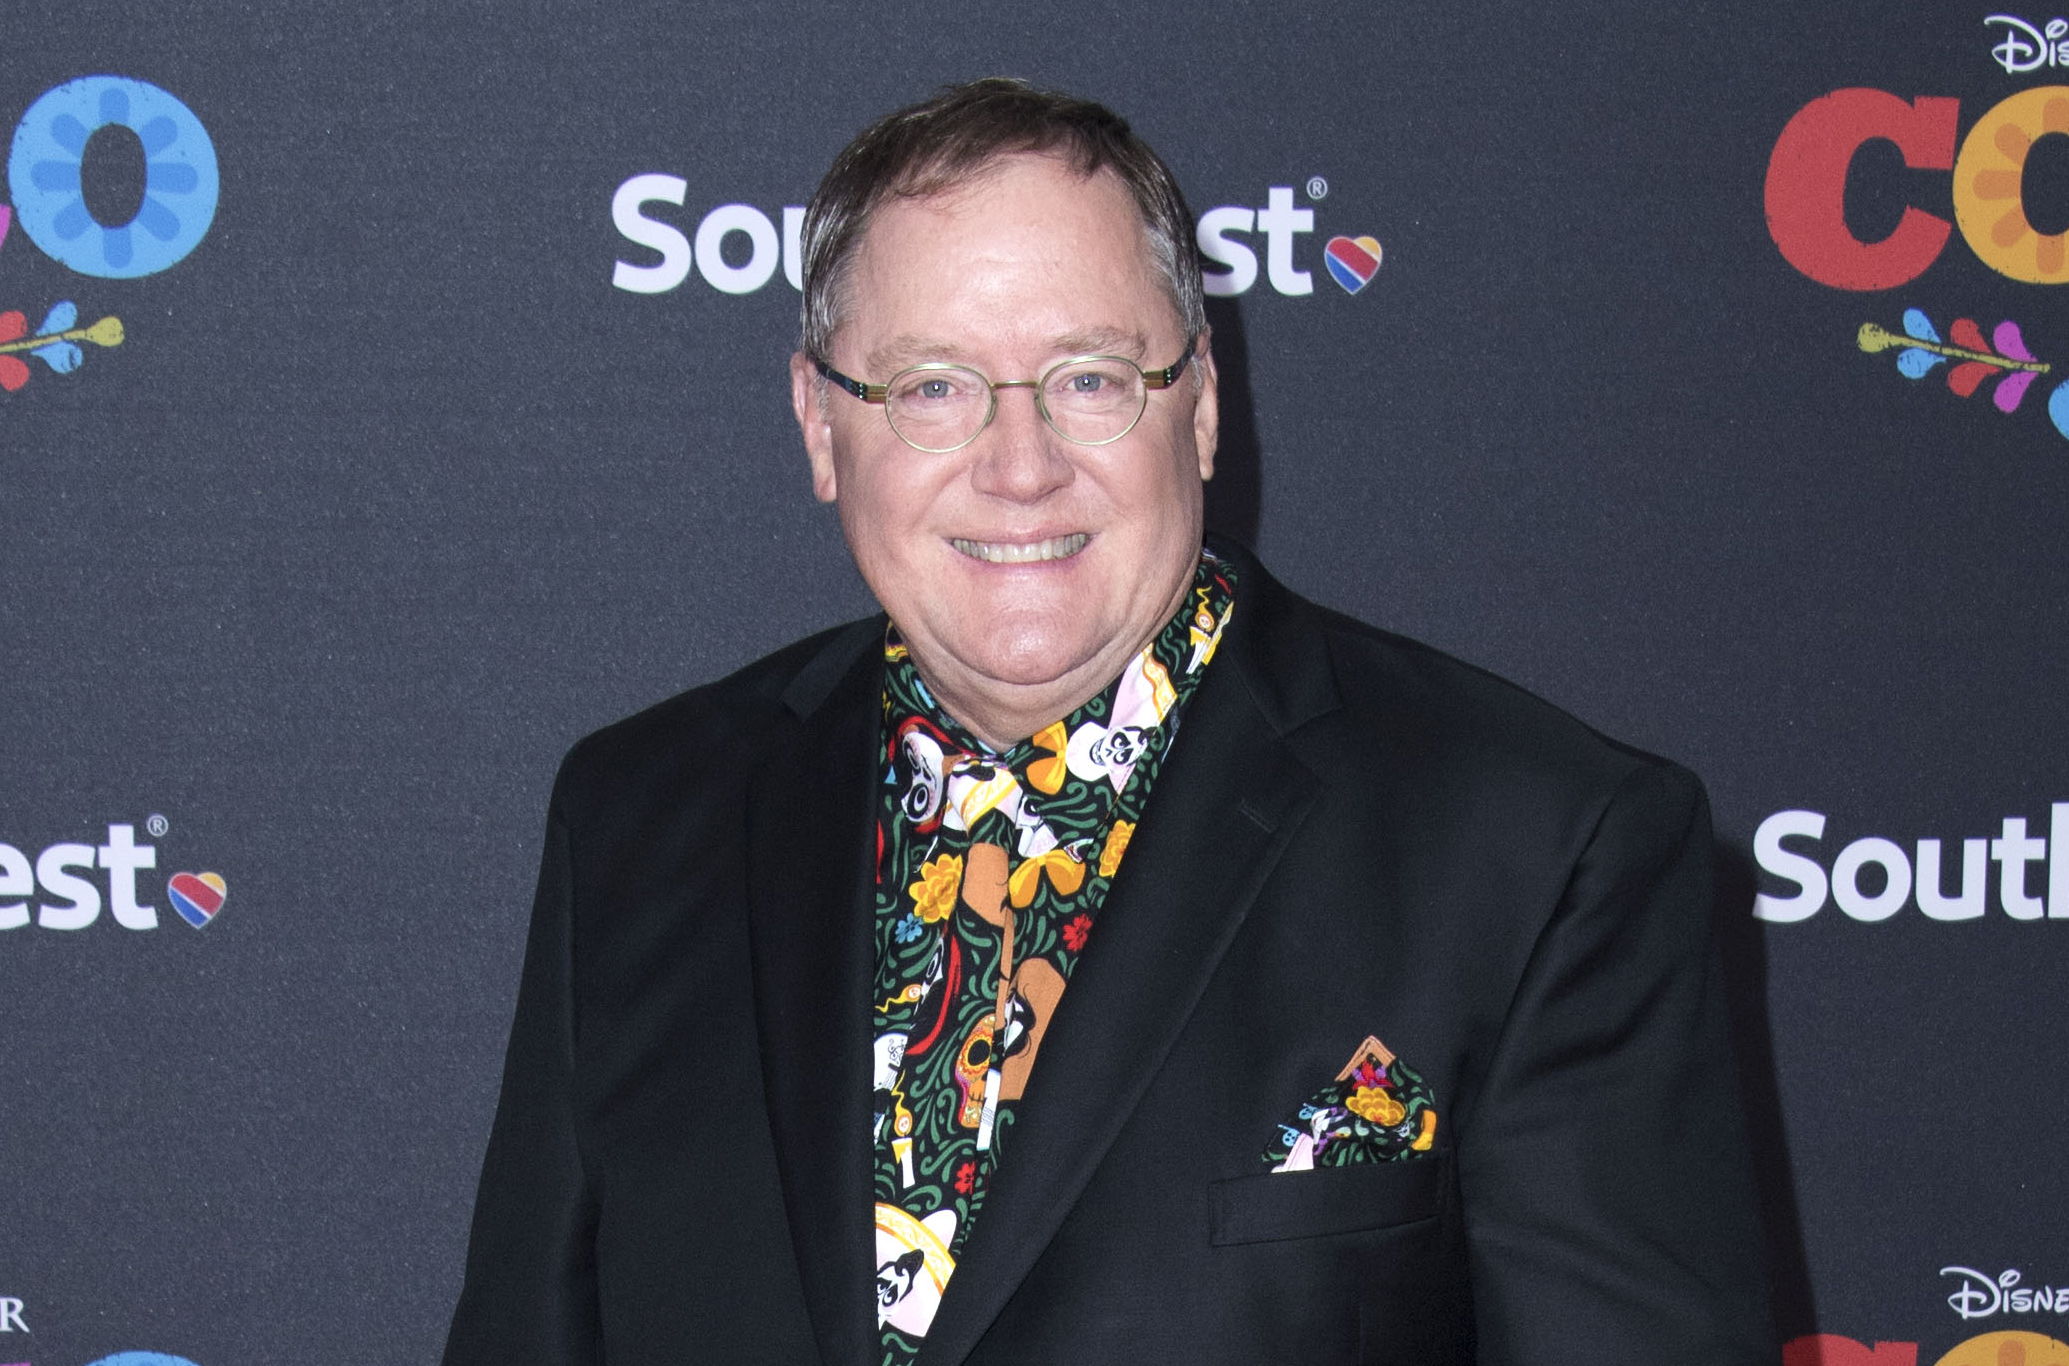 Executive producer John Lasseter attends the Disney Pixar's 'COCO' premiere on November 8, 2017, in Hollywood, California. —  AFP pic